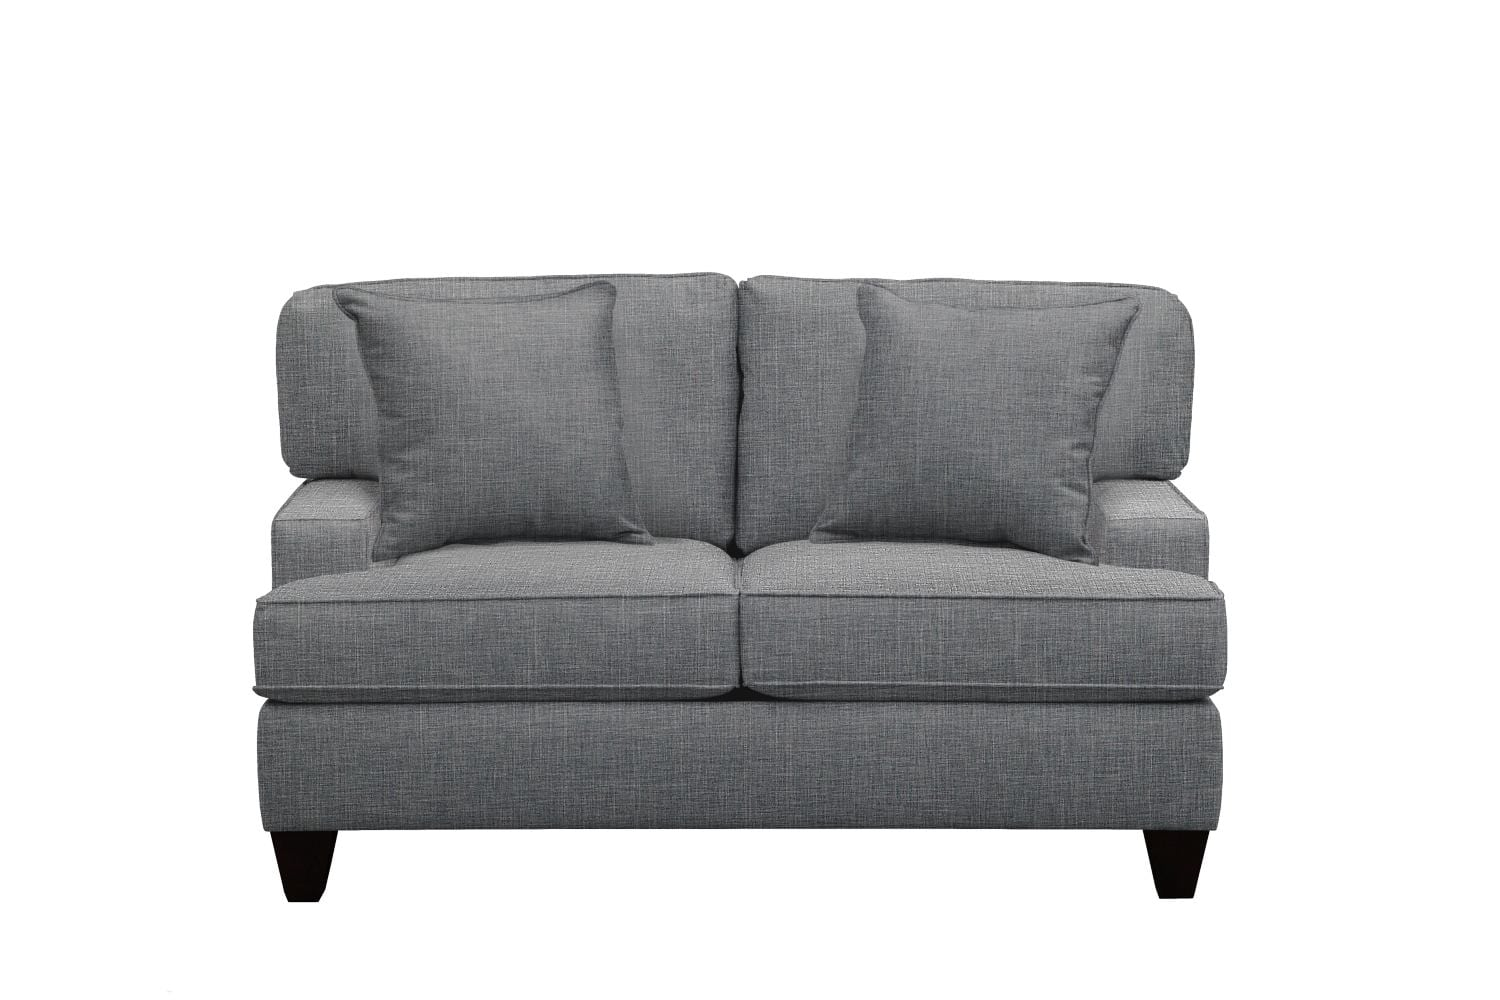 "Conner Track Arm Sofa 63"" Milford II Charcoal w/ Milford II Charcoal  Pillow"